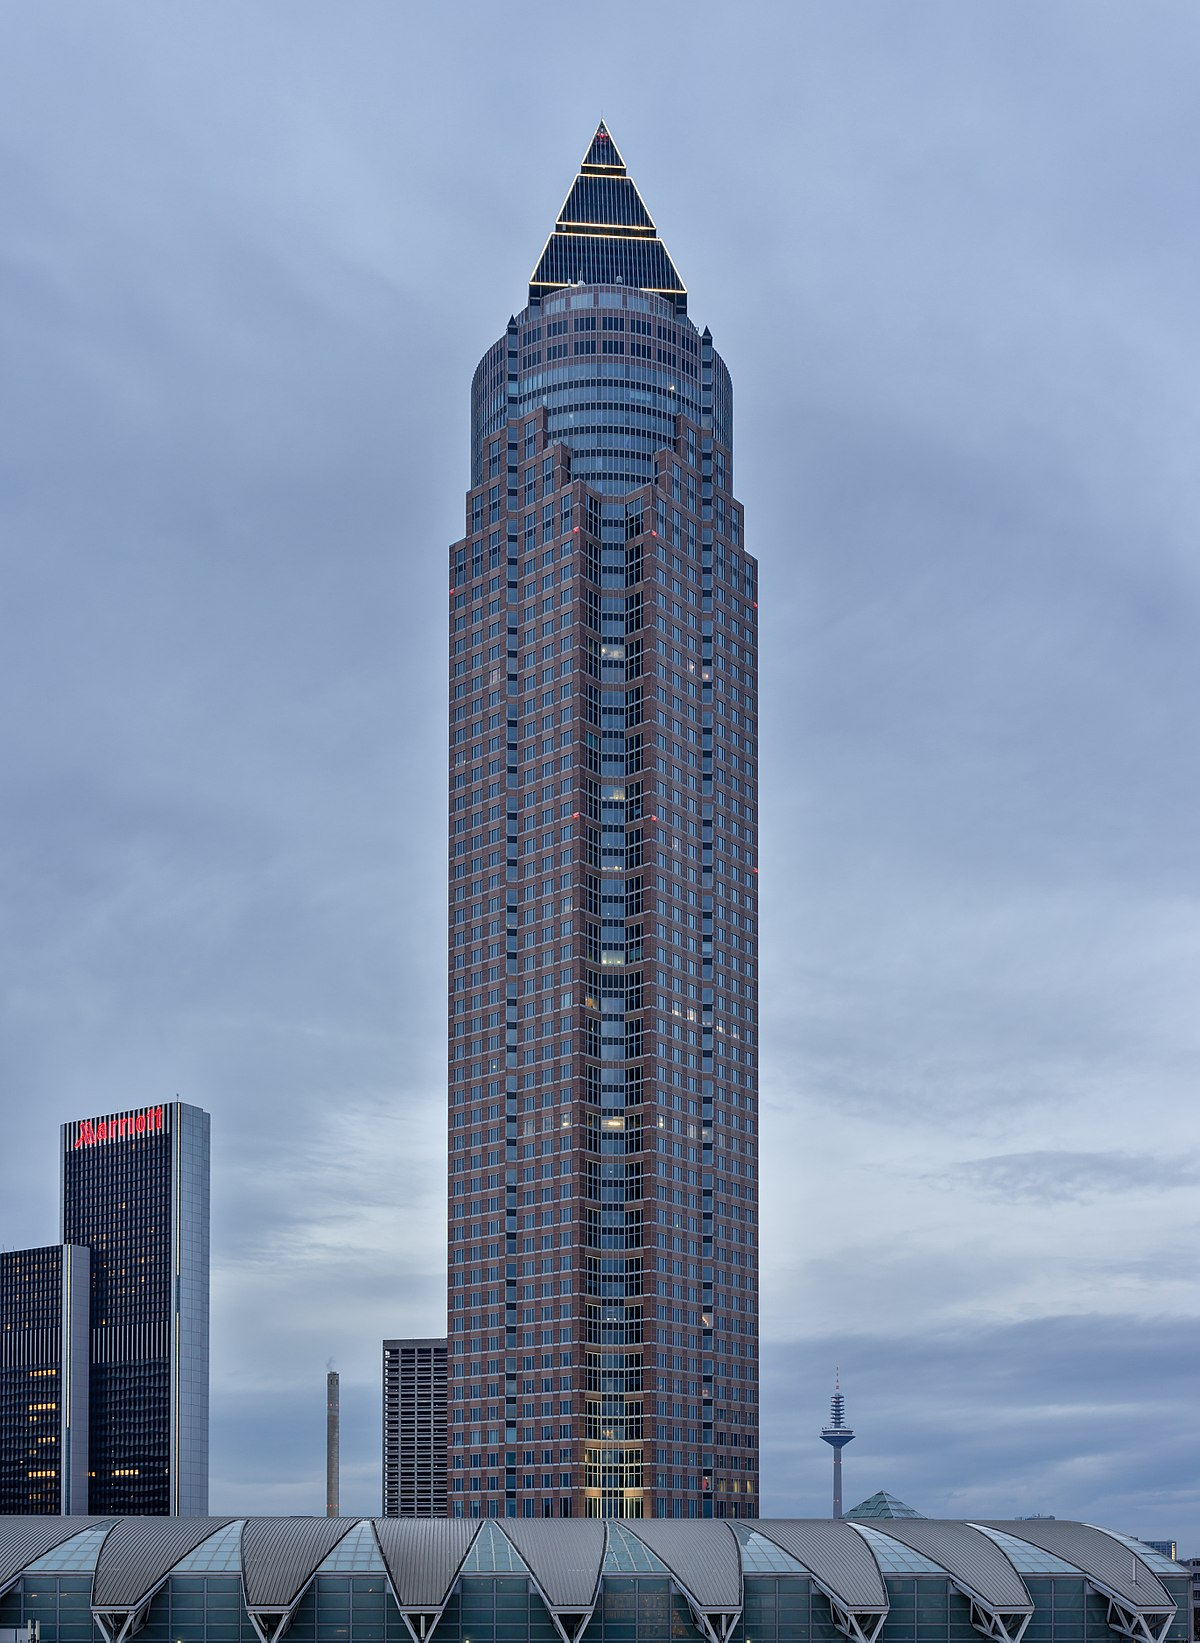 messeturm frankfurt am main wikipedia. Black Bedroom Furniture Sets. Home Design Ideas